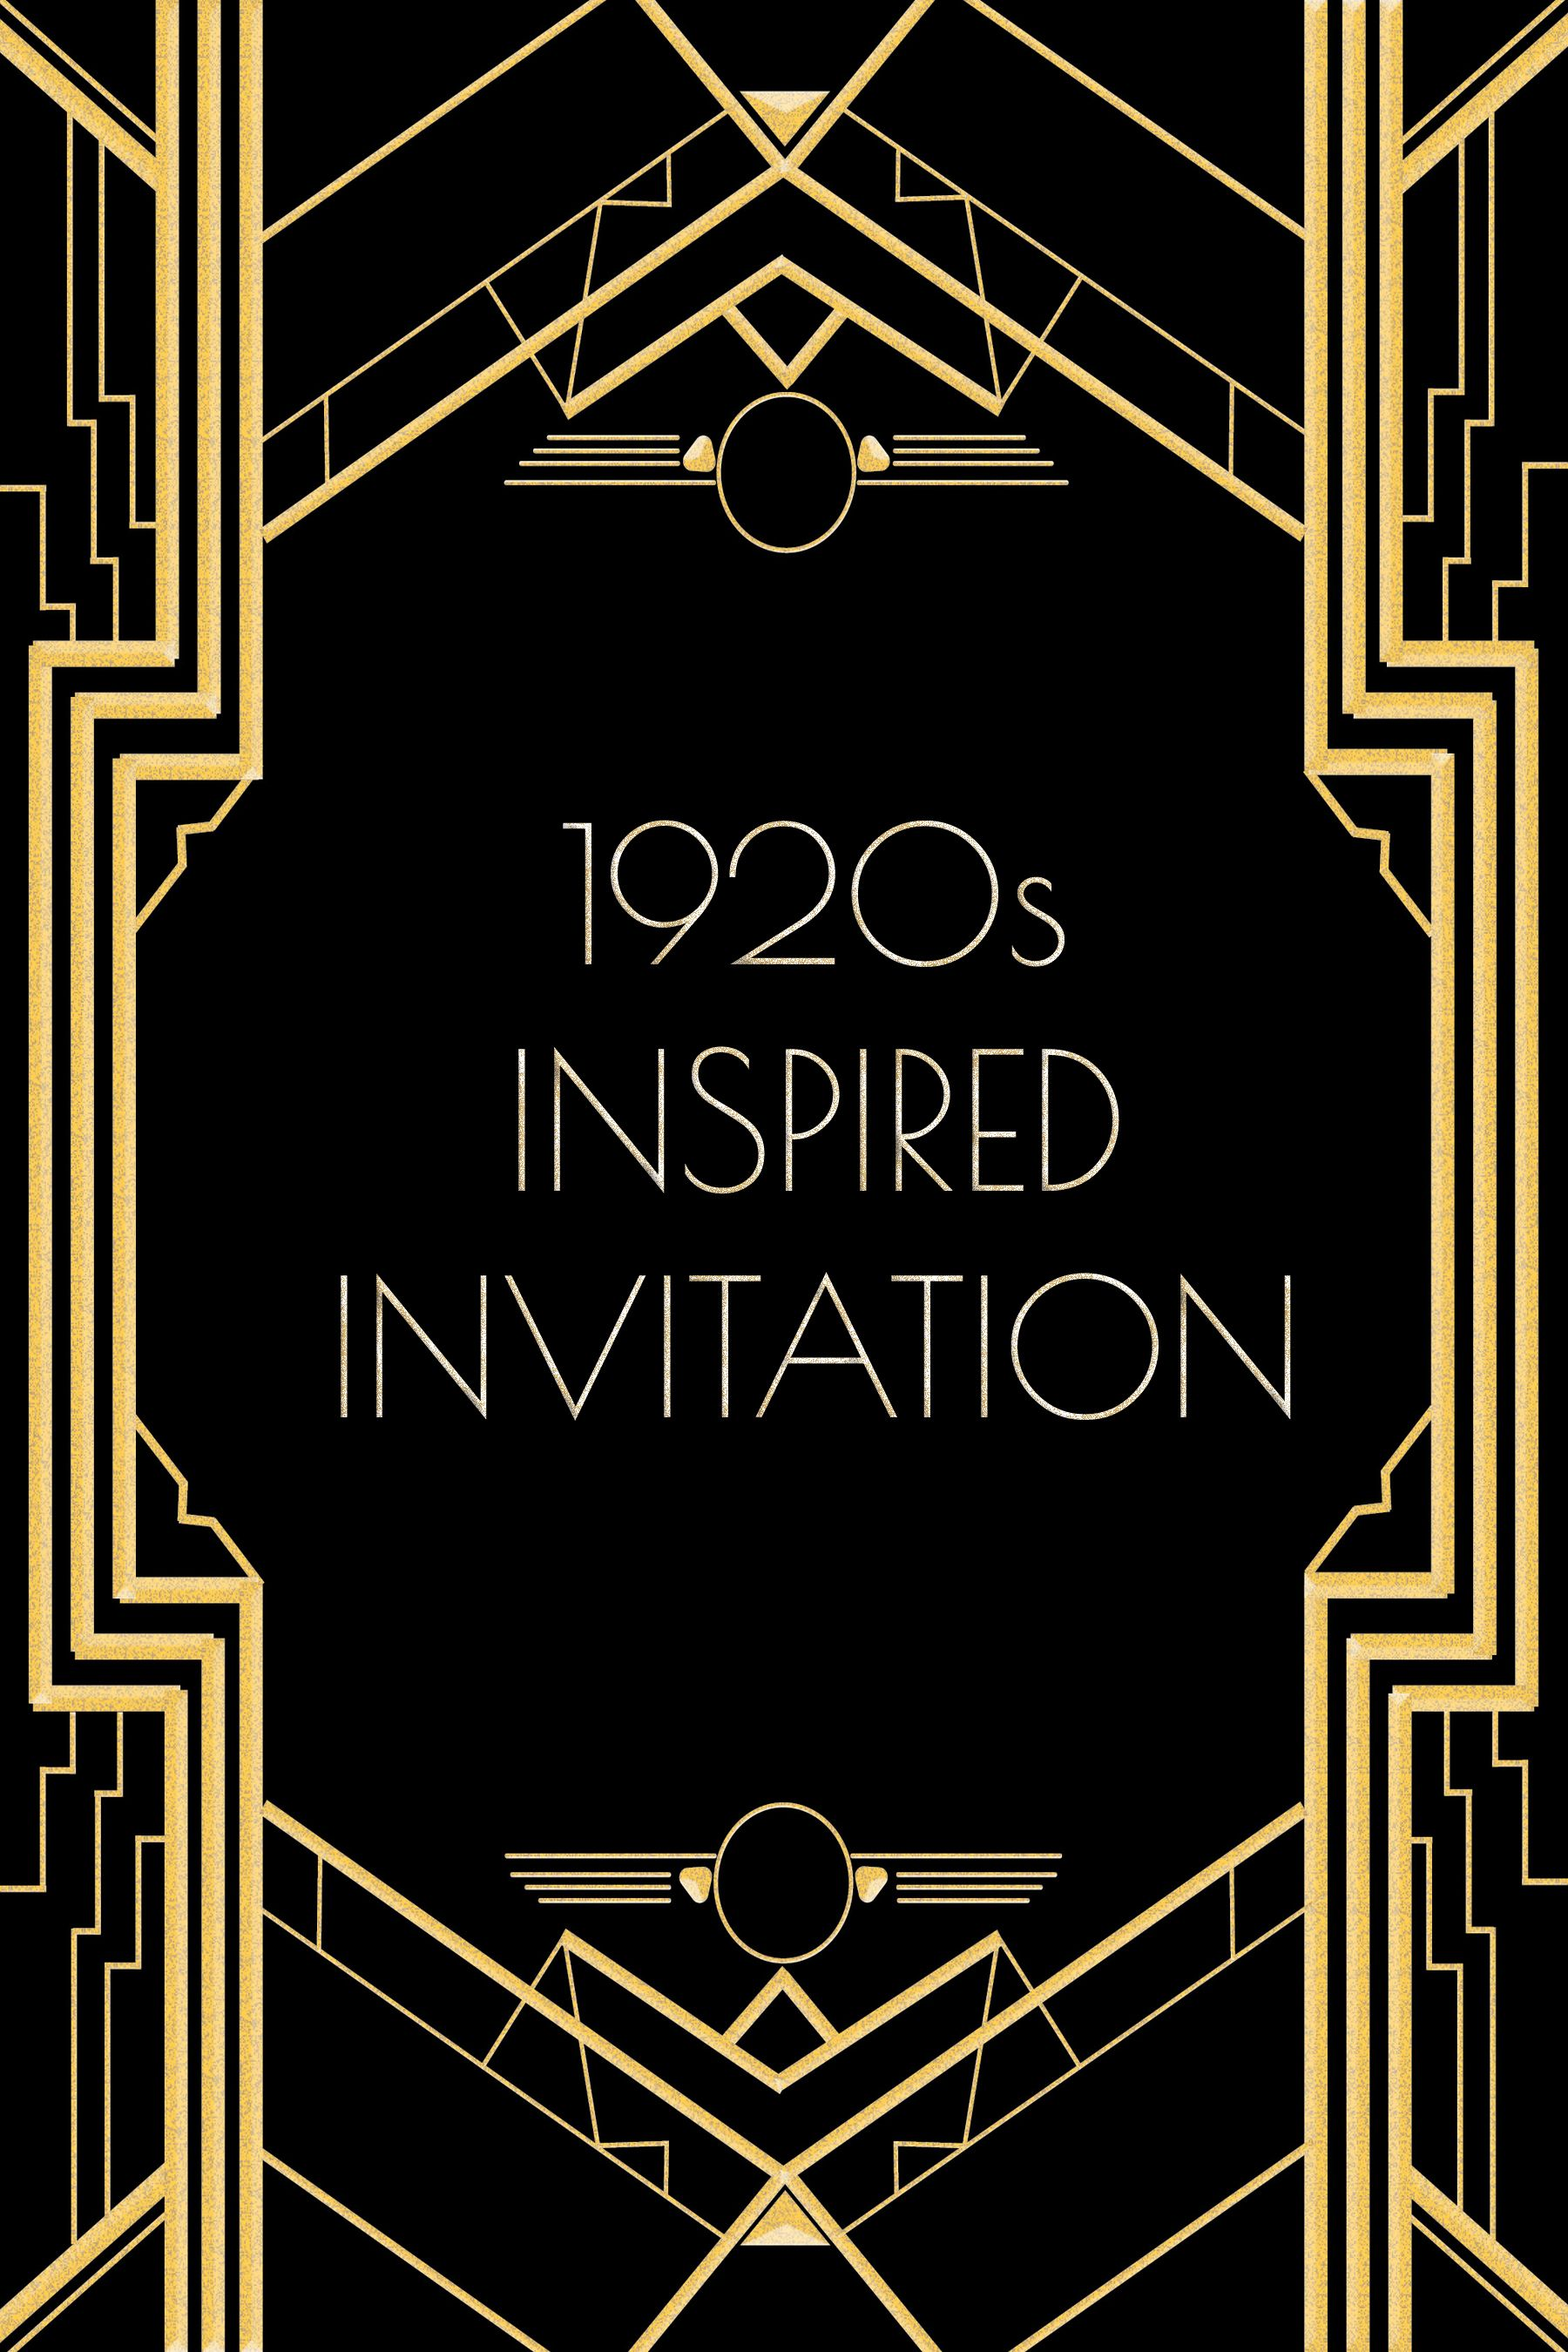 S Years Cabaret Photos Use This S Inspired Invitation - 1920s party invitation template